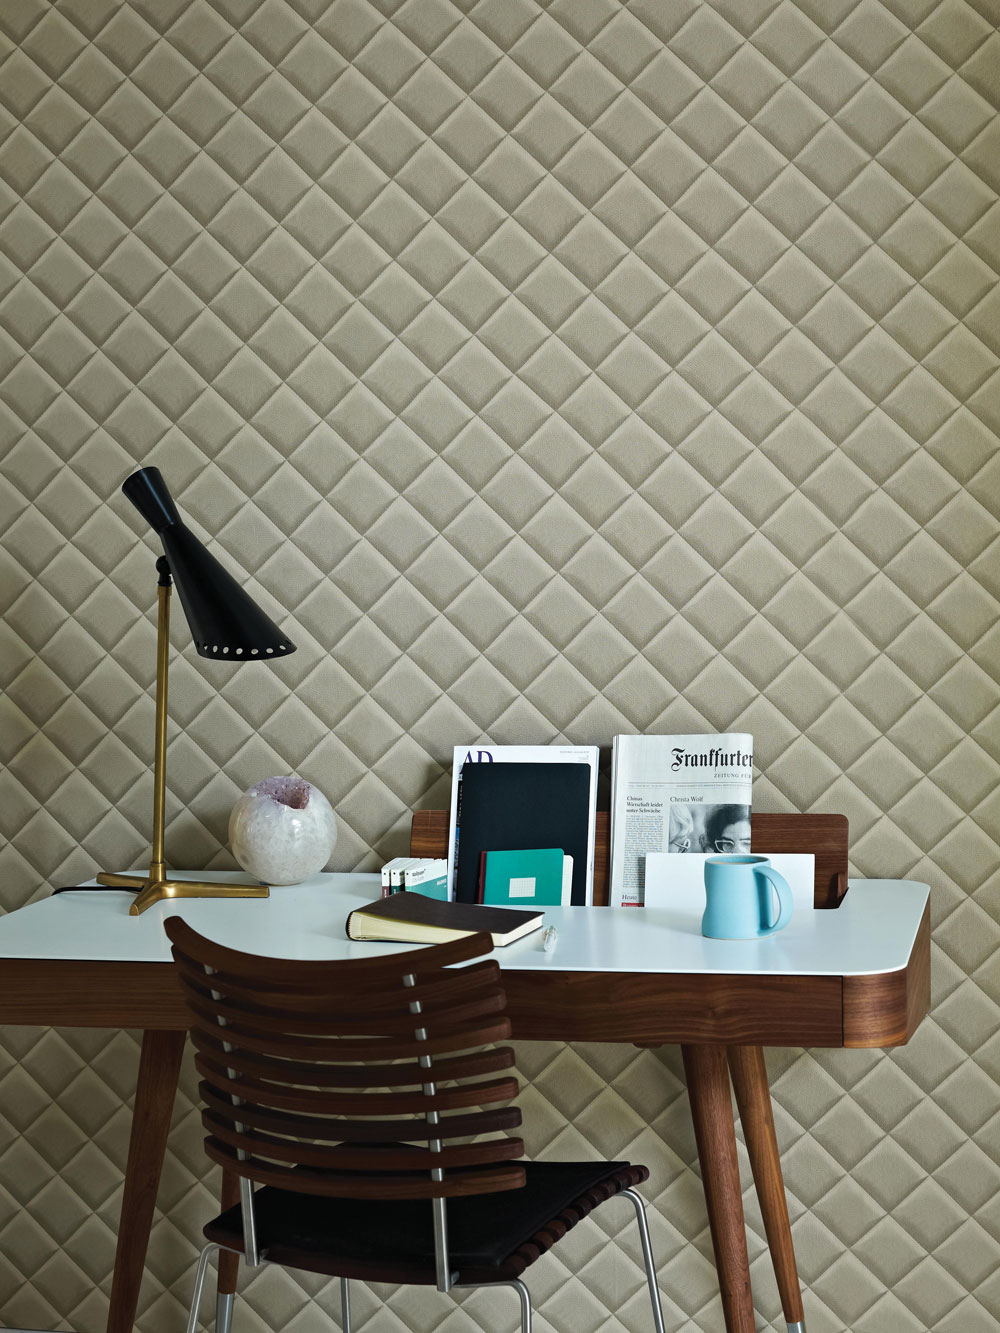 Heavenly Walls - Home and Lifestyle magazine